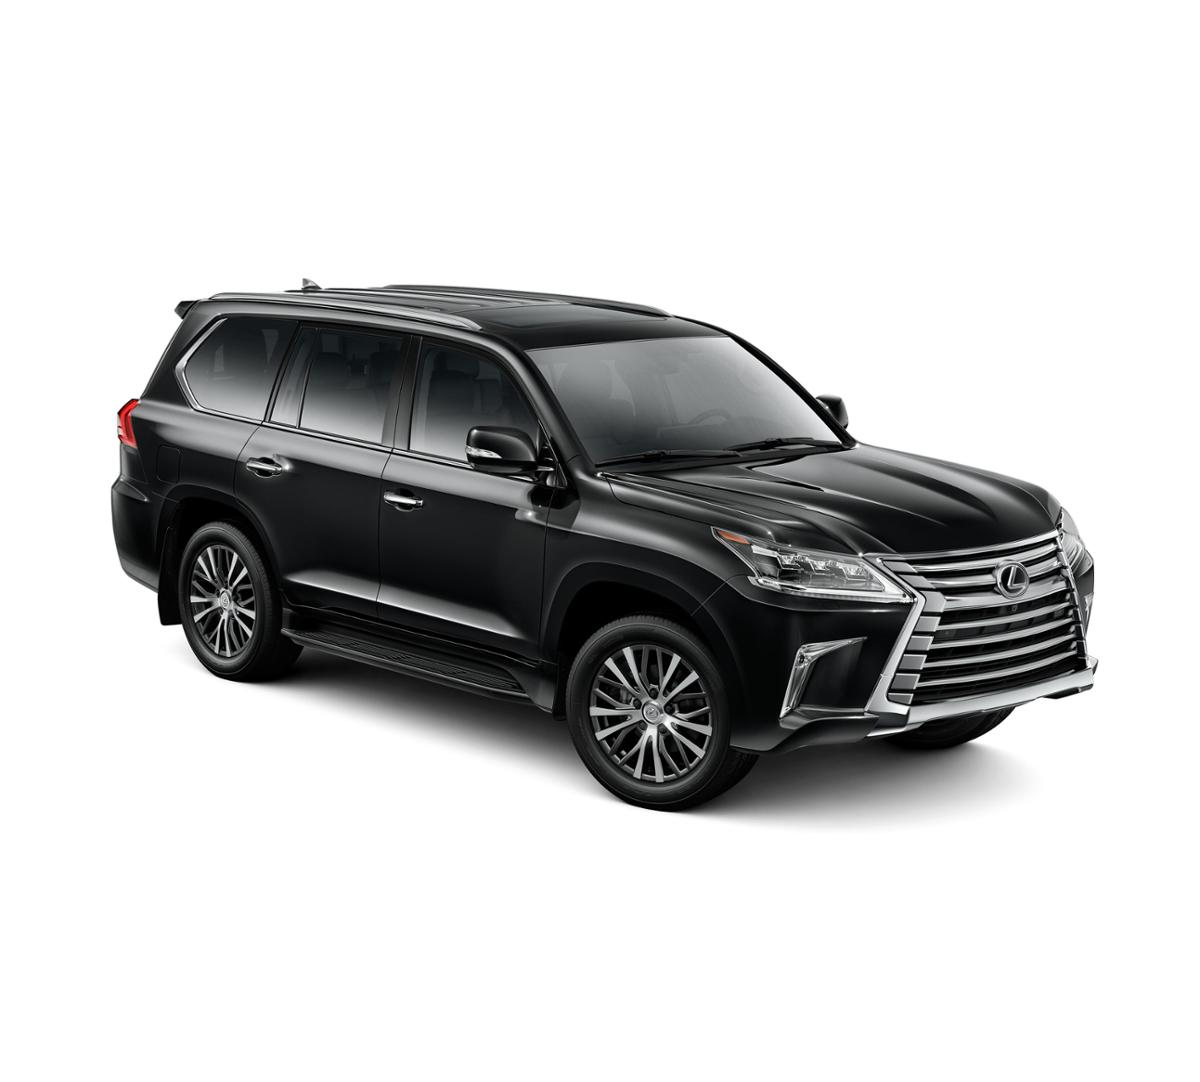 2018 Lexus LX 570 Vehicle Photo in Danvers, MA 01923